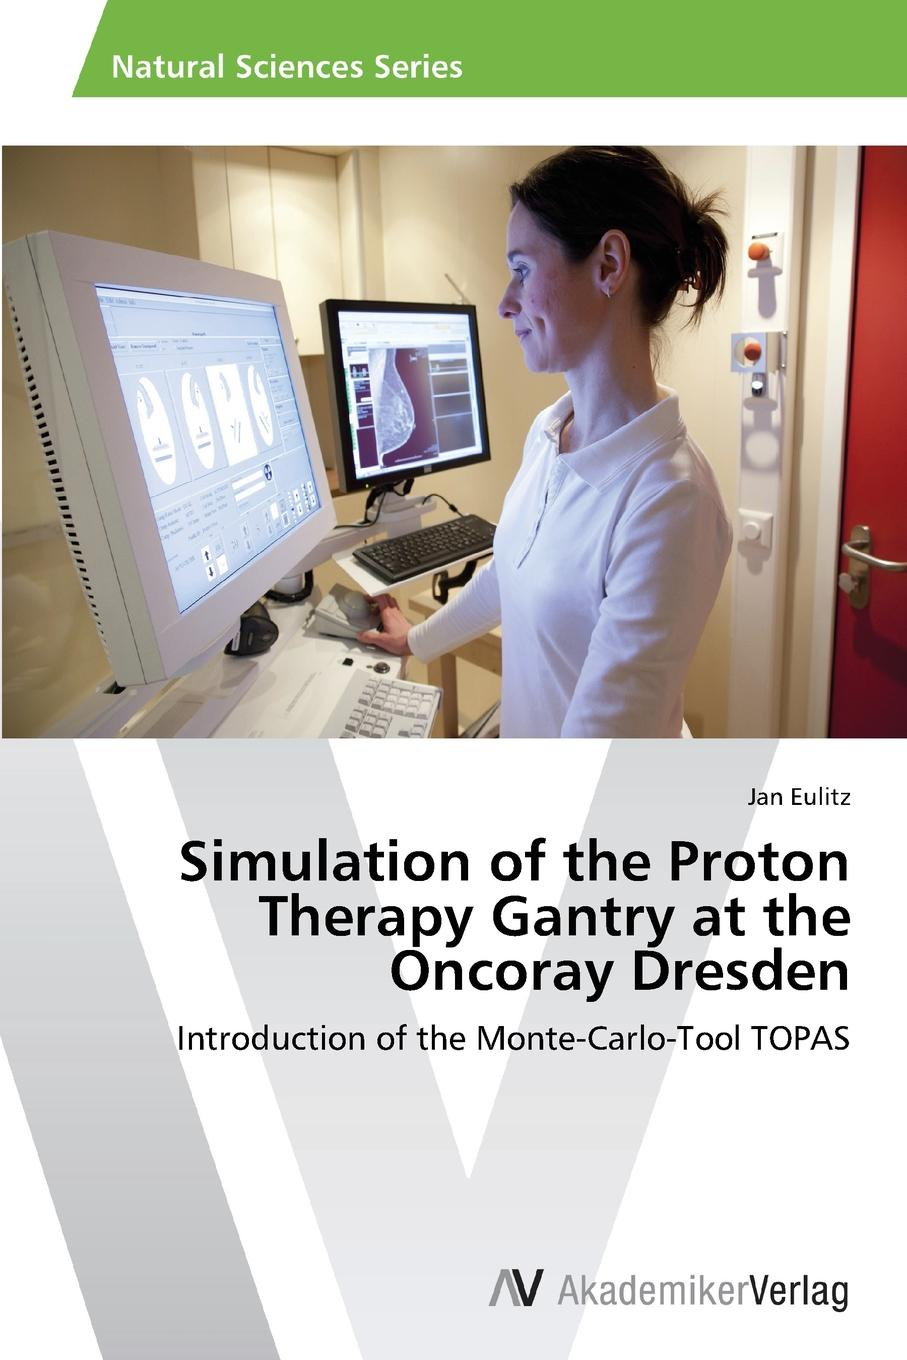 Eulitz Jan Simulation of the Proton Therapy Gantry at the Oncoray Dresden eulitz jan simulation of the proton therapy gantry at the oncoray dresden